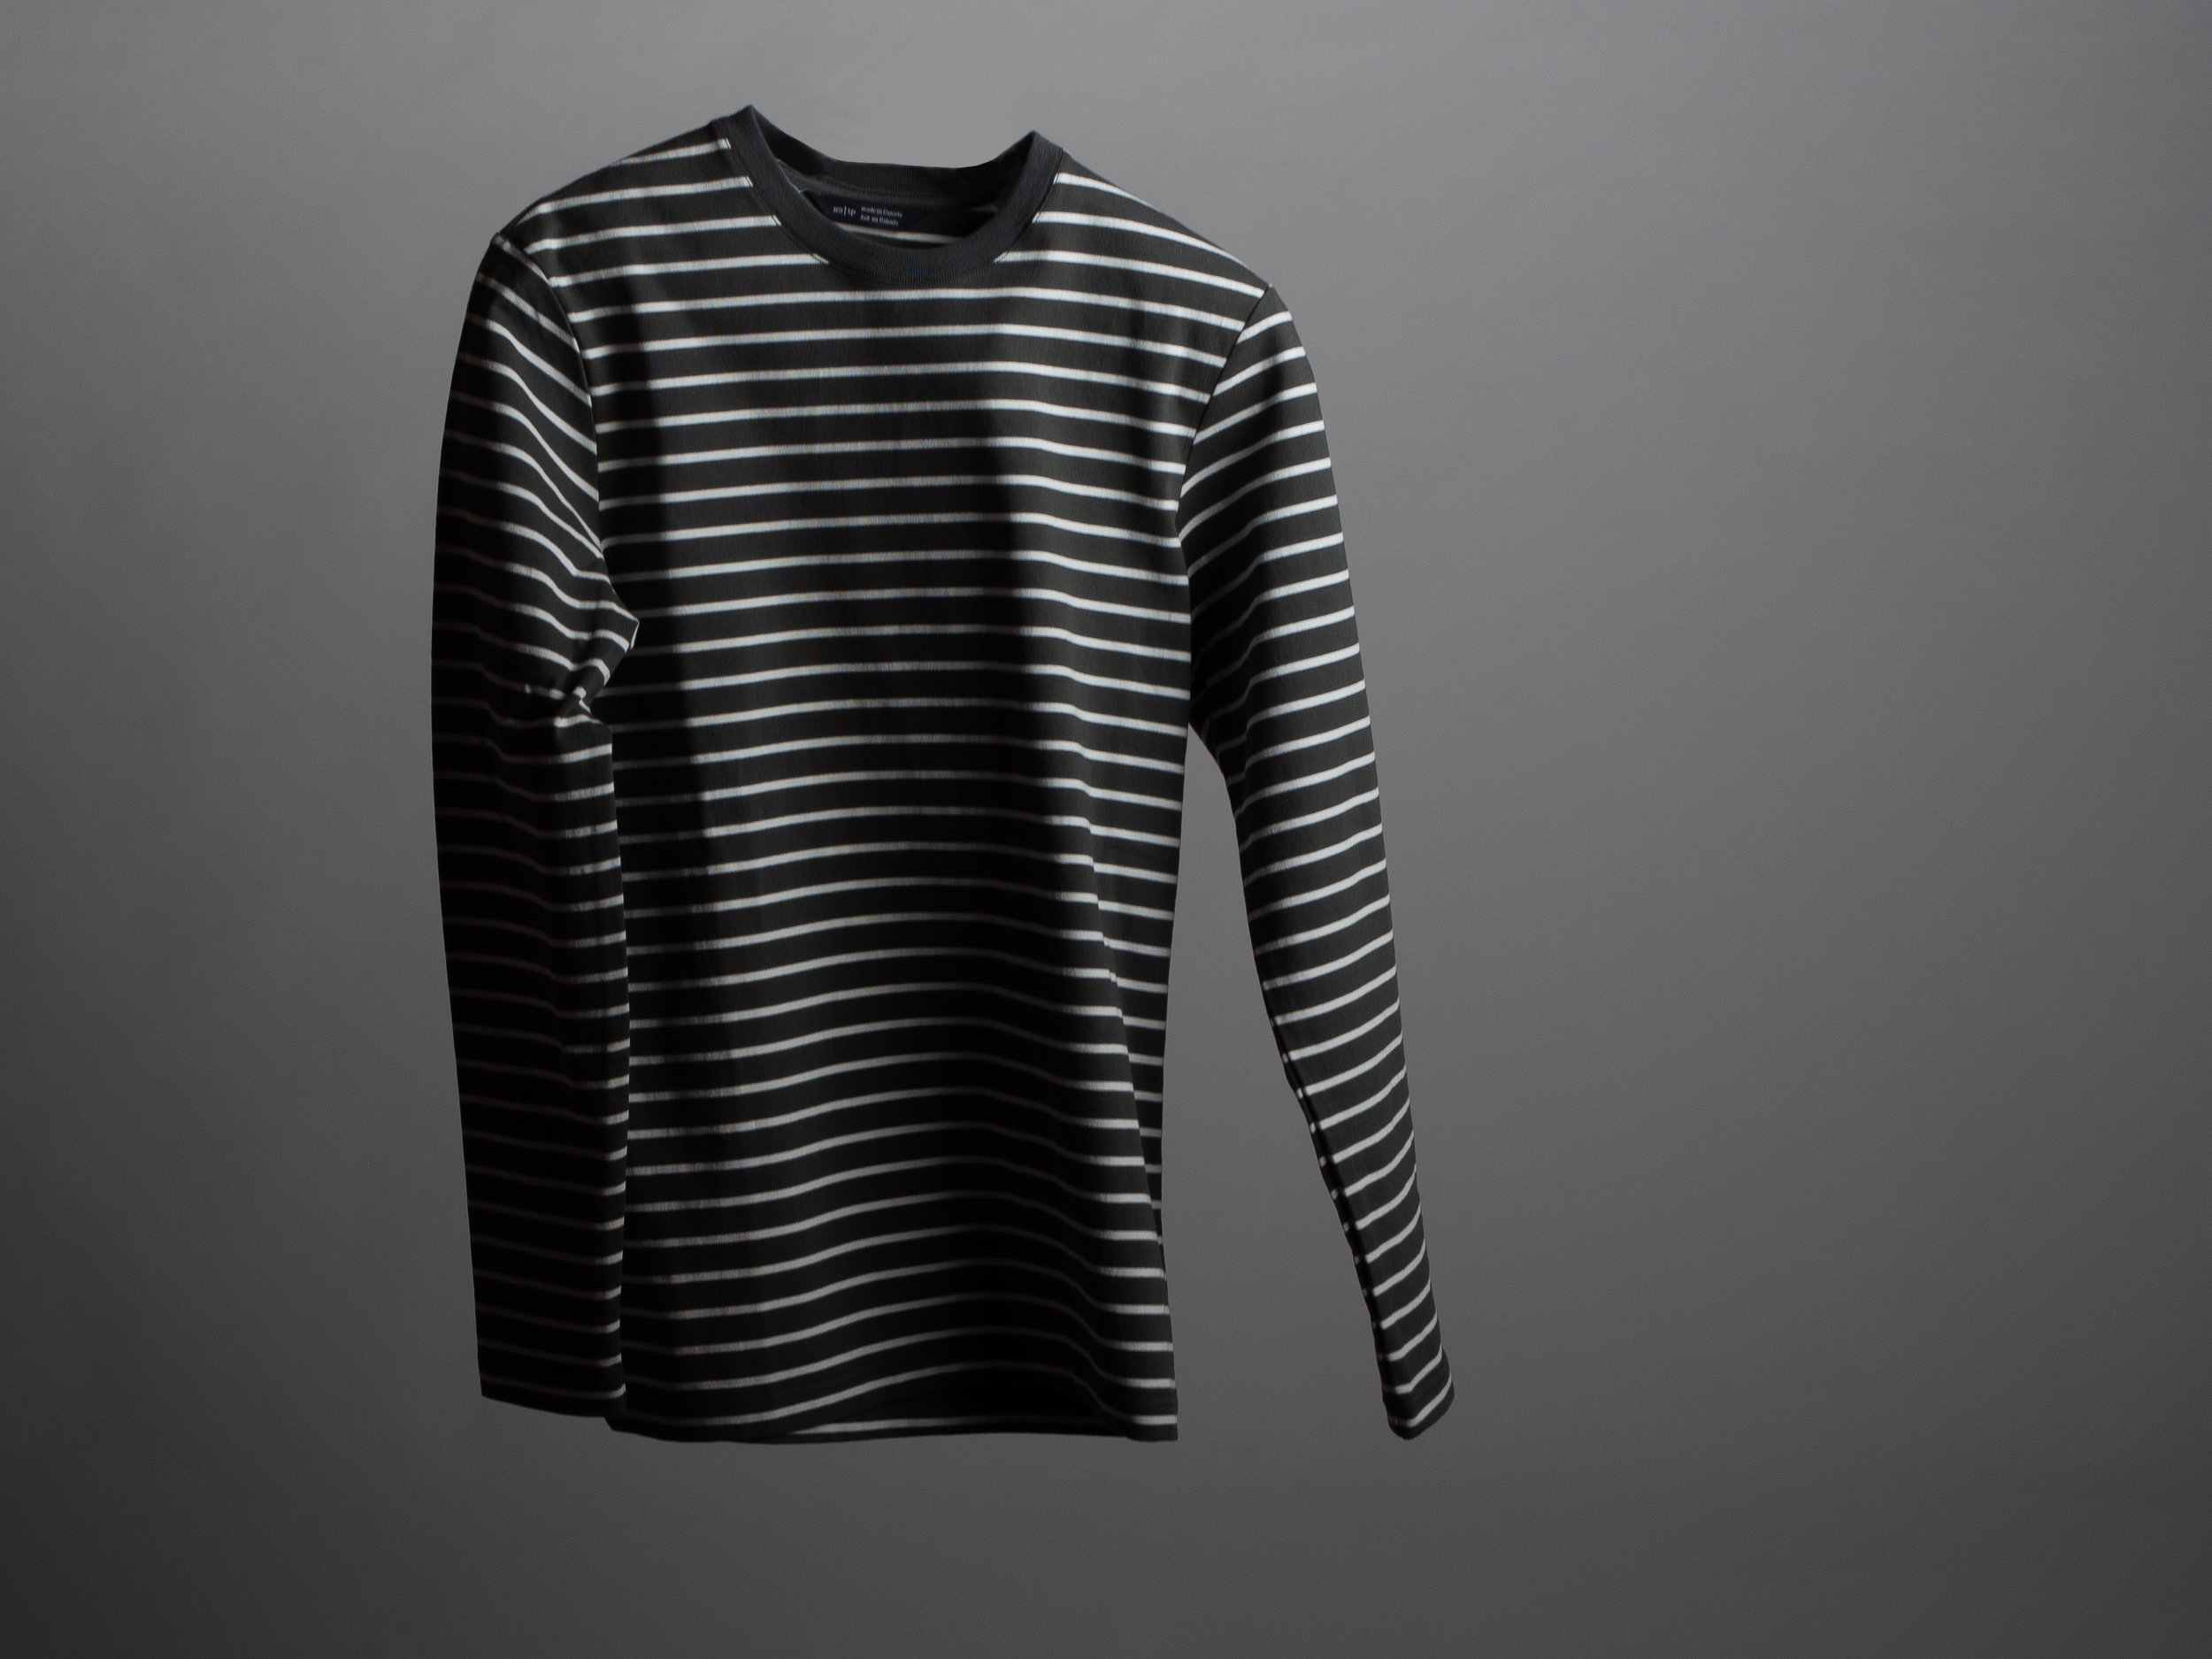 Wings + Horns Heavyweight Jersey Long Sleeve - The Heavyweight Jersey Long Sleeve is an easy fitting take on the classic Breton Stripe Shirt, made with a heavy gauge cotton to insulate against the cold. It features a slight drop shoulder, and is finished with flatlock stitching throughout. The Heavyweight Jersey Long Sleeve is made in Canada.